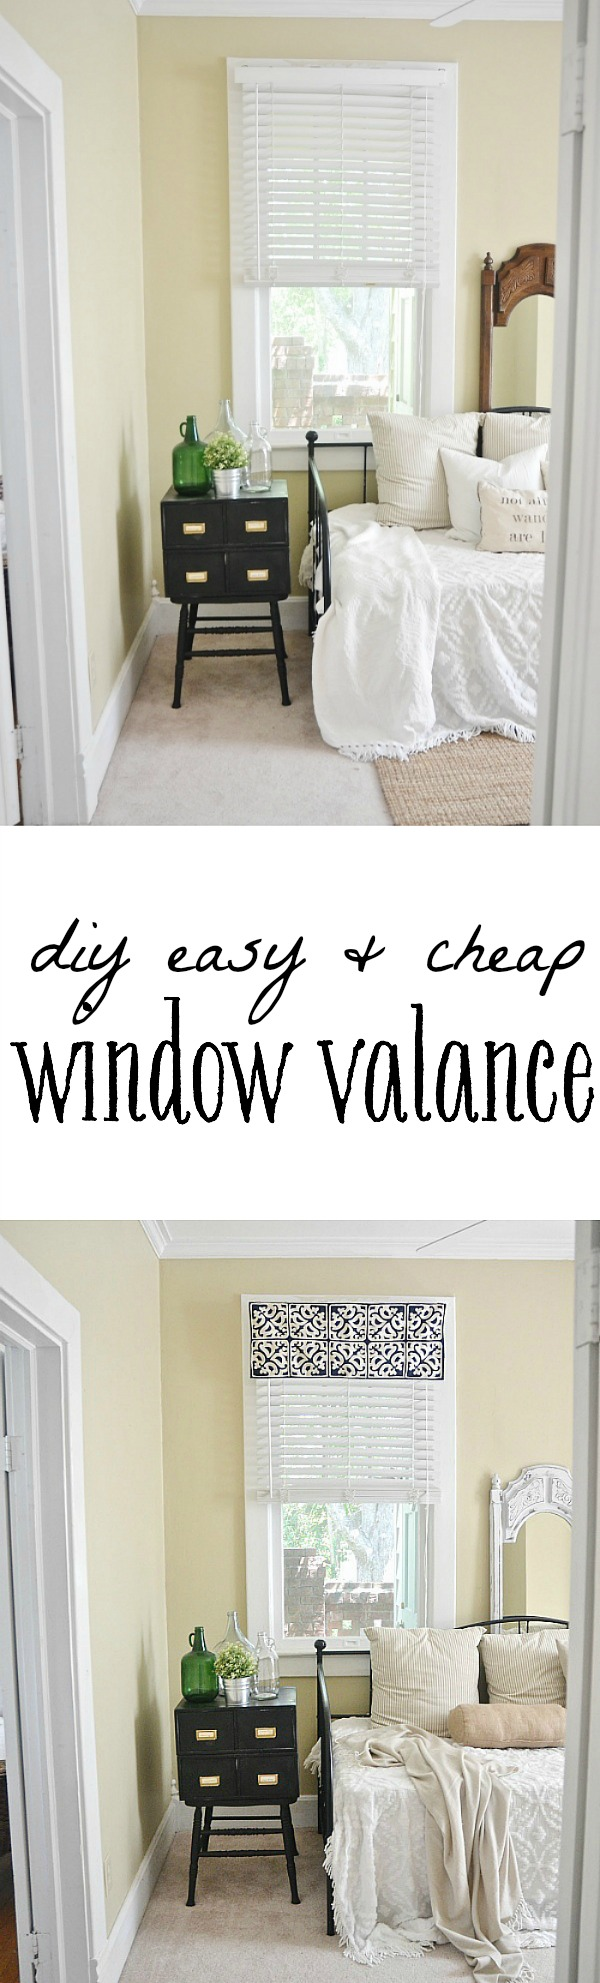 Diy Easy Window Valance No Sew Liz Marie Blog